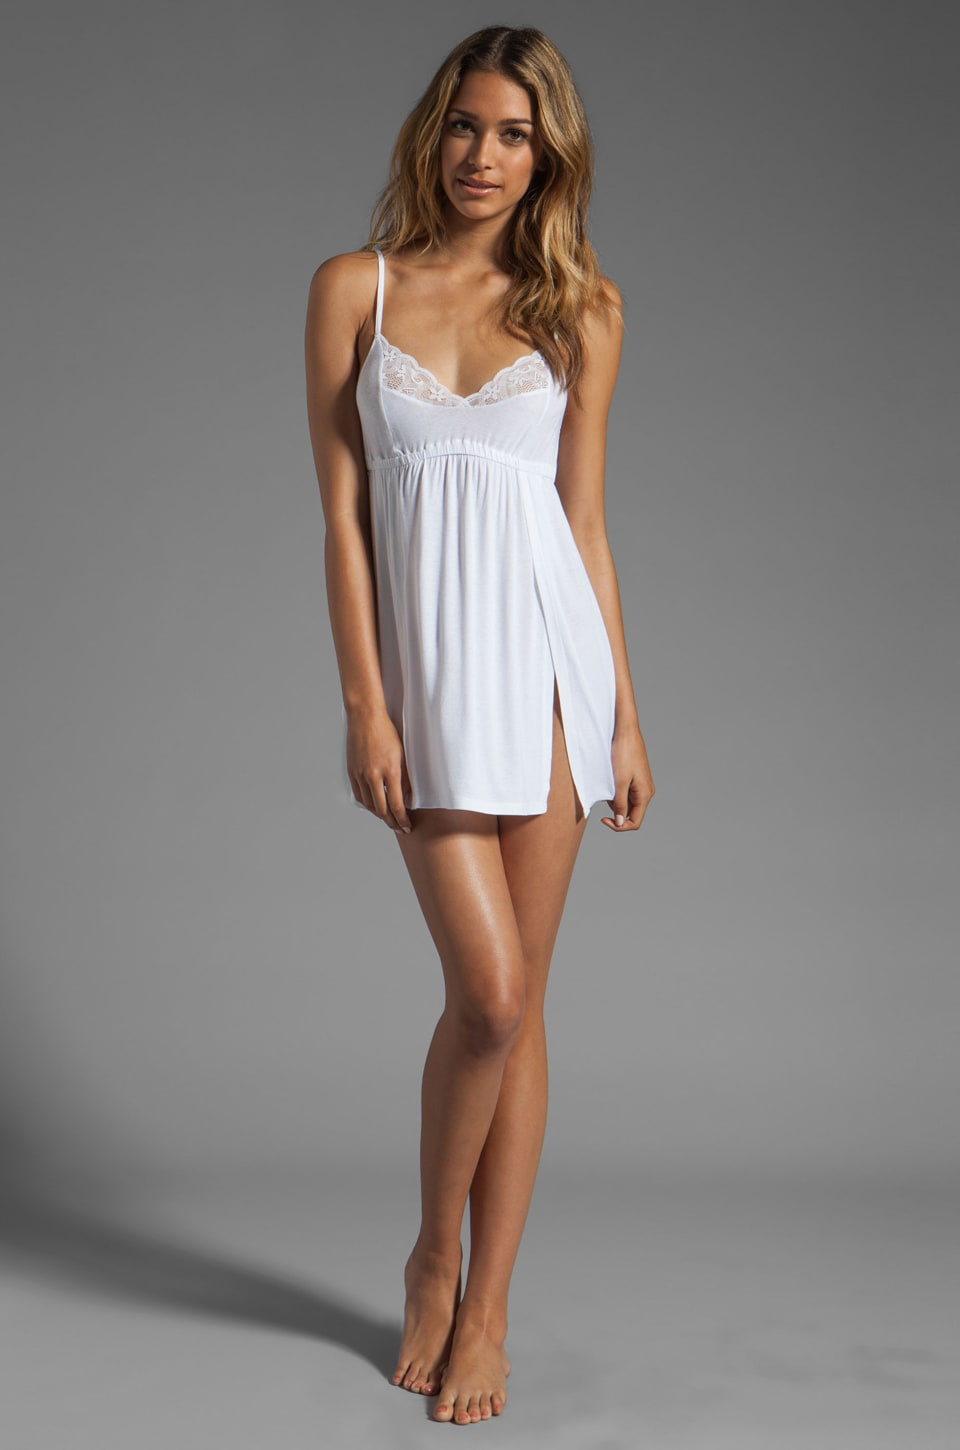 Only Hearts Feather Weight Chemise in White